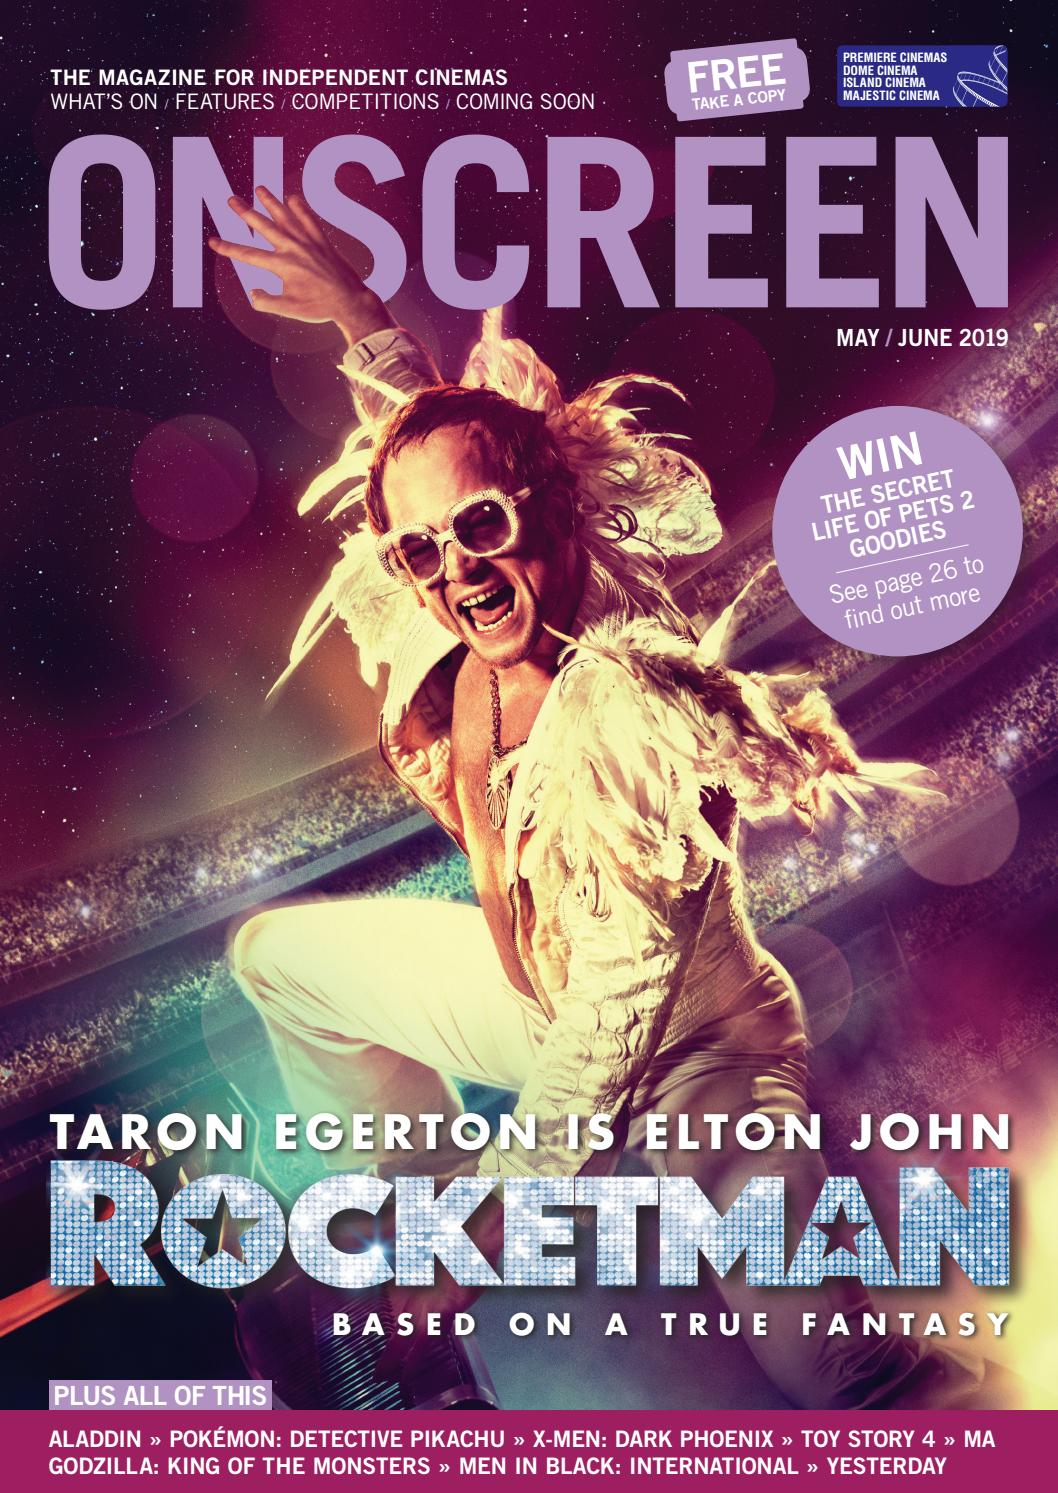 ONSCREEN Magazine May/June 2019 by ONSCREEN Magazine - issuu